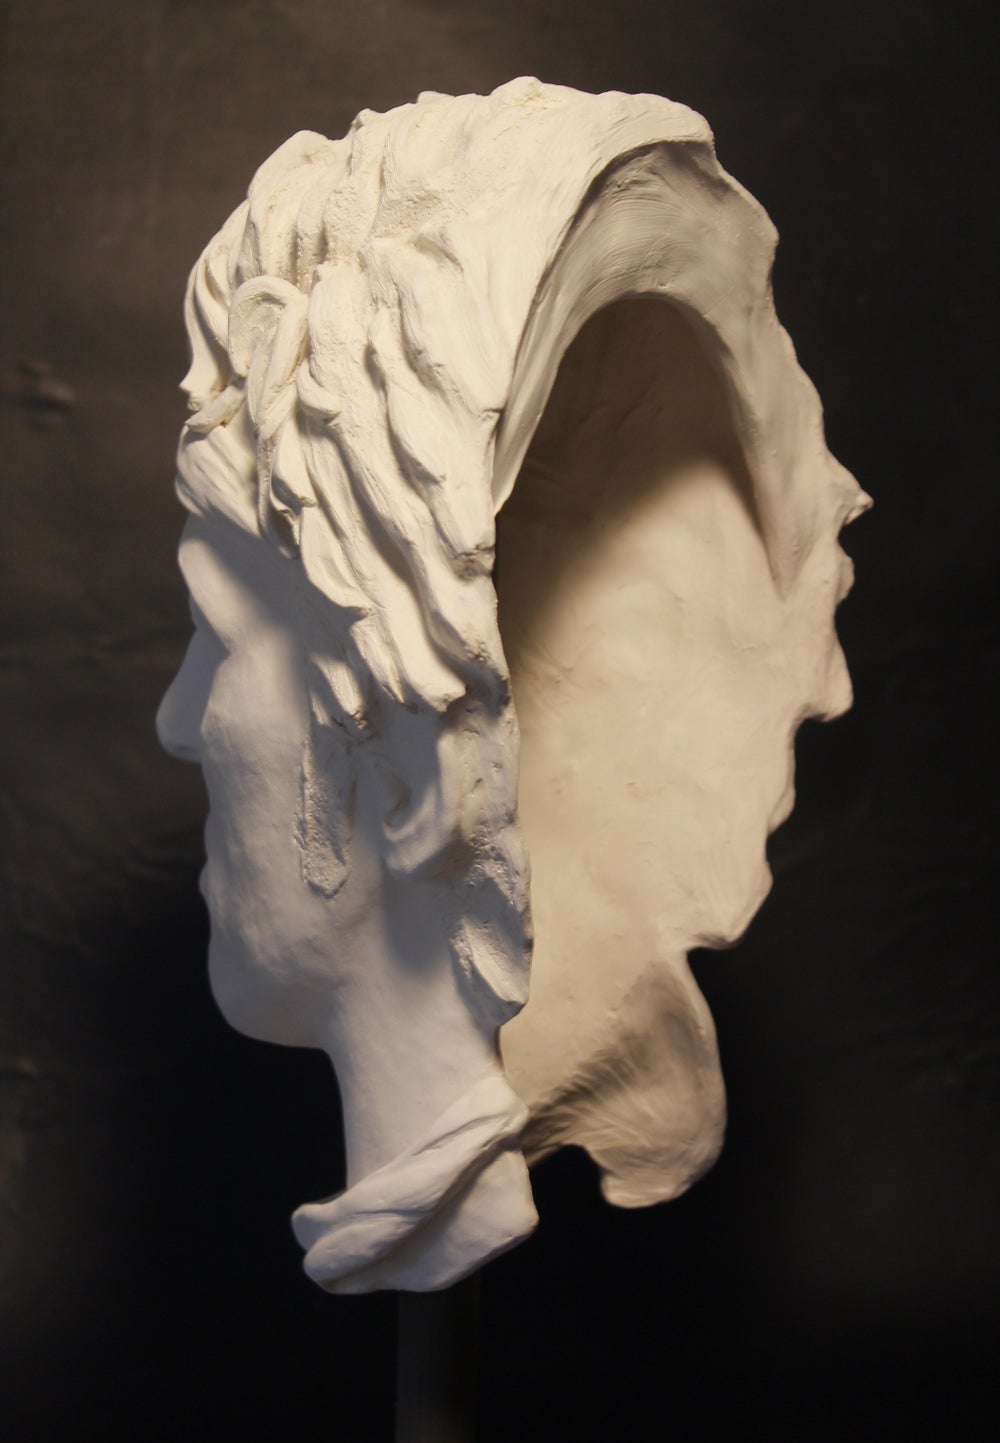 Bruce Springsteen White Clay Sculpture (Iconic Headband)